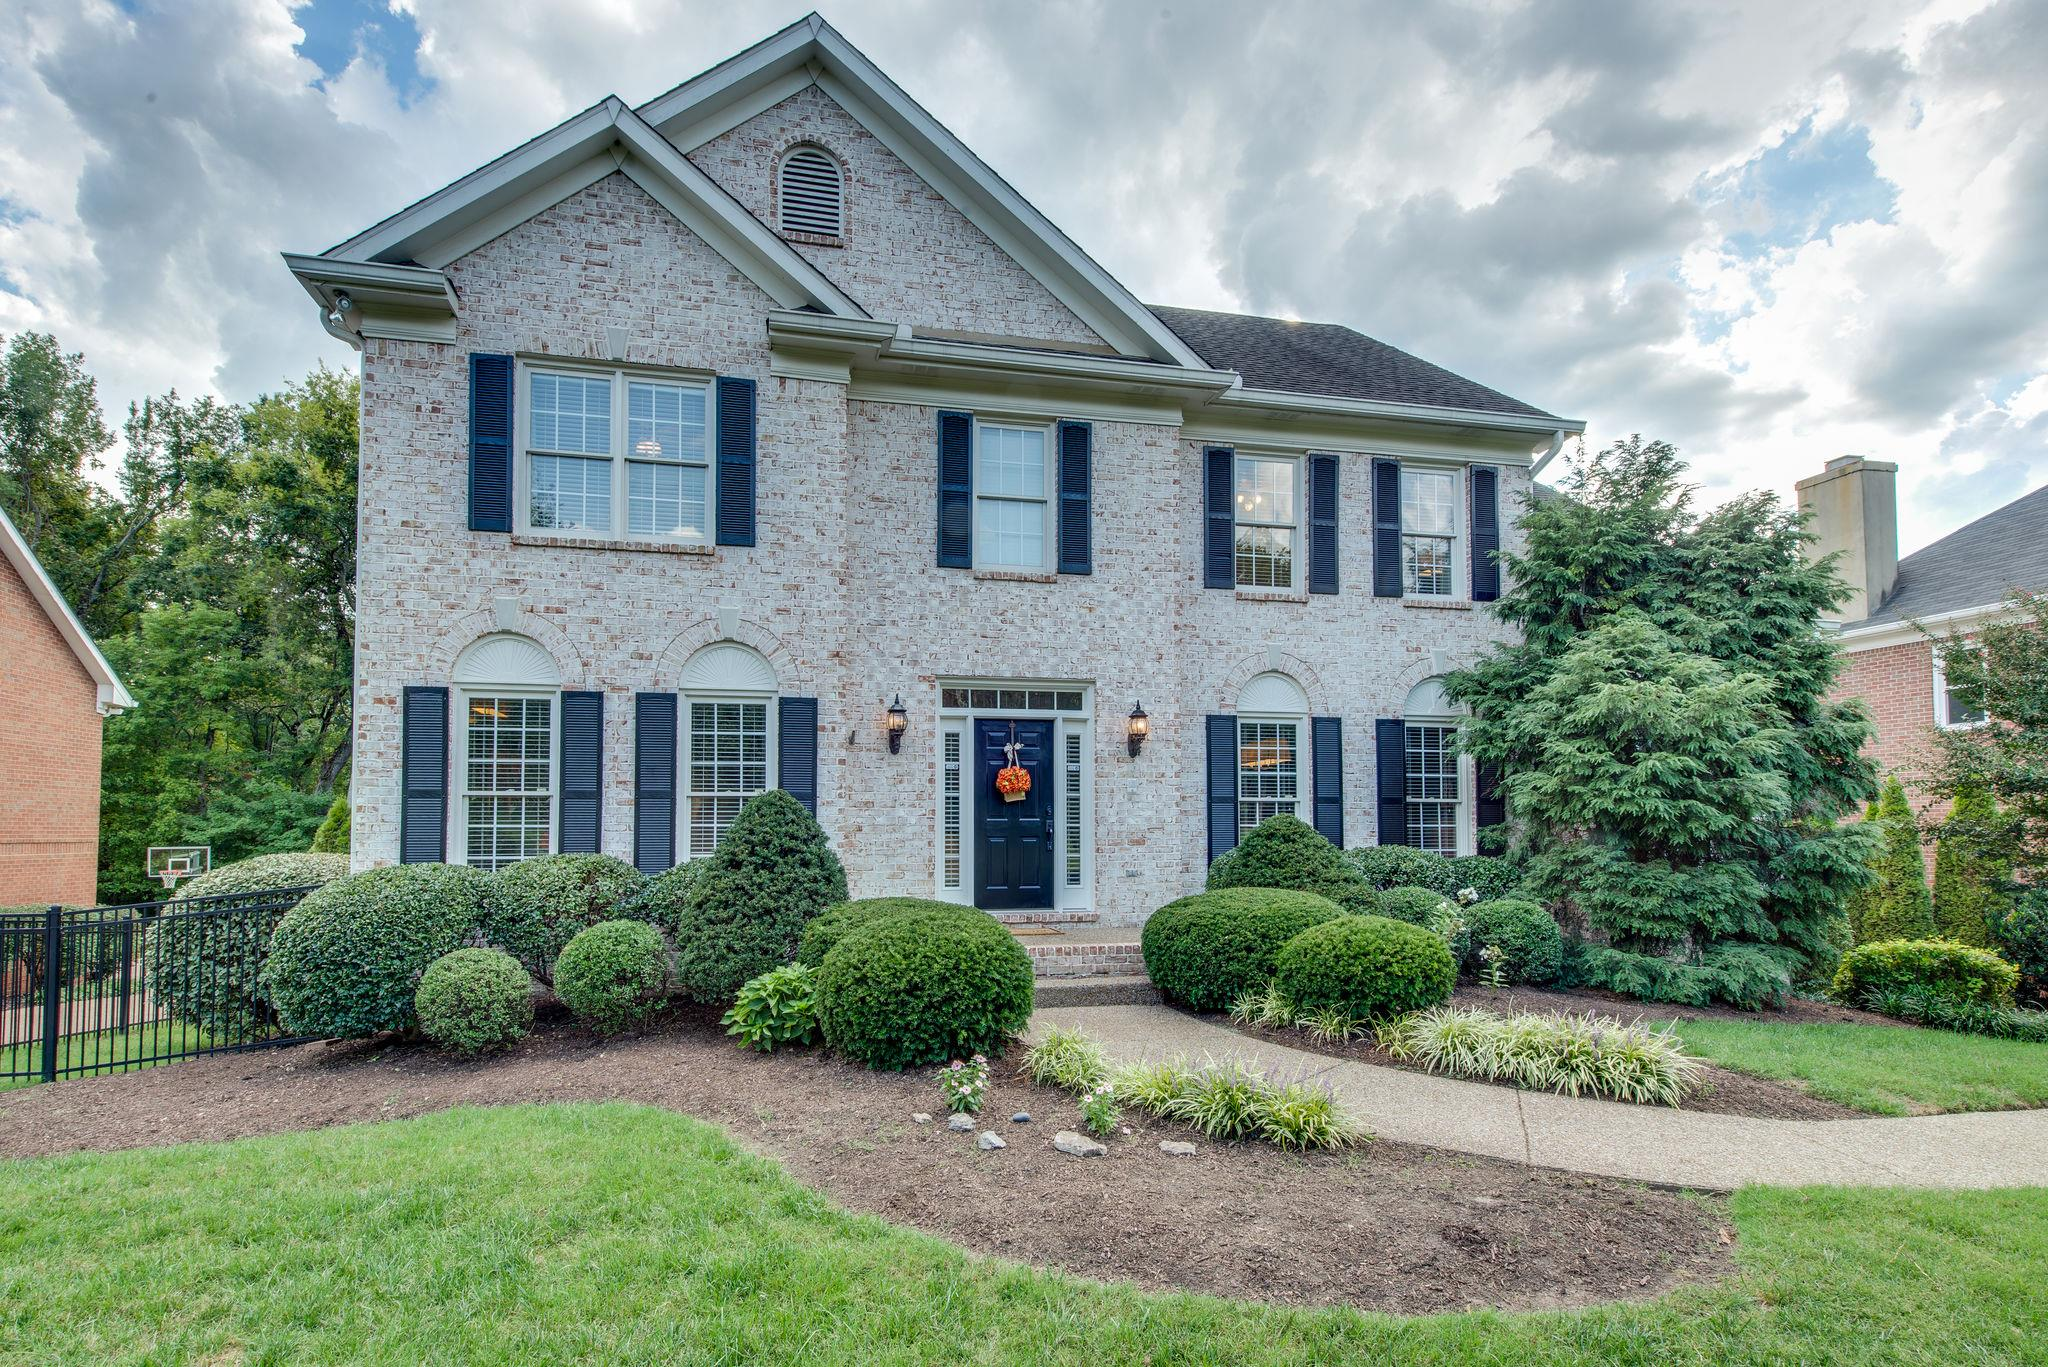 1715 Charity Dr, Brentwood, TN 37027